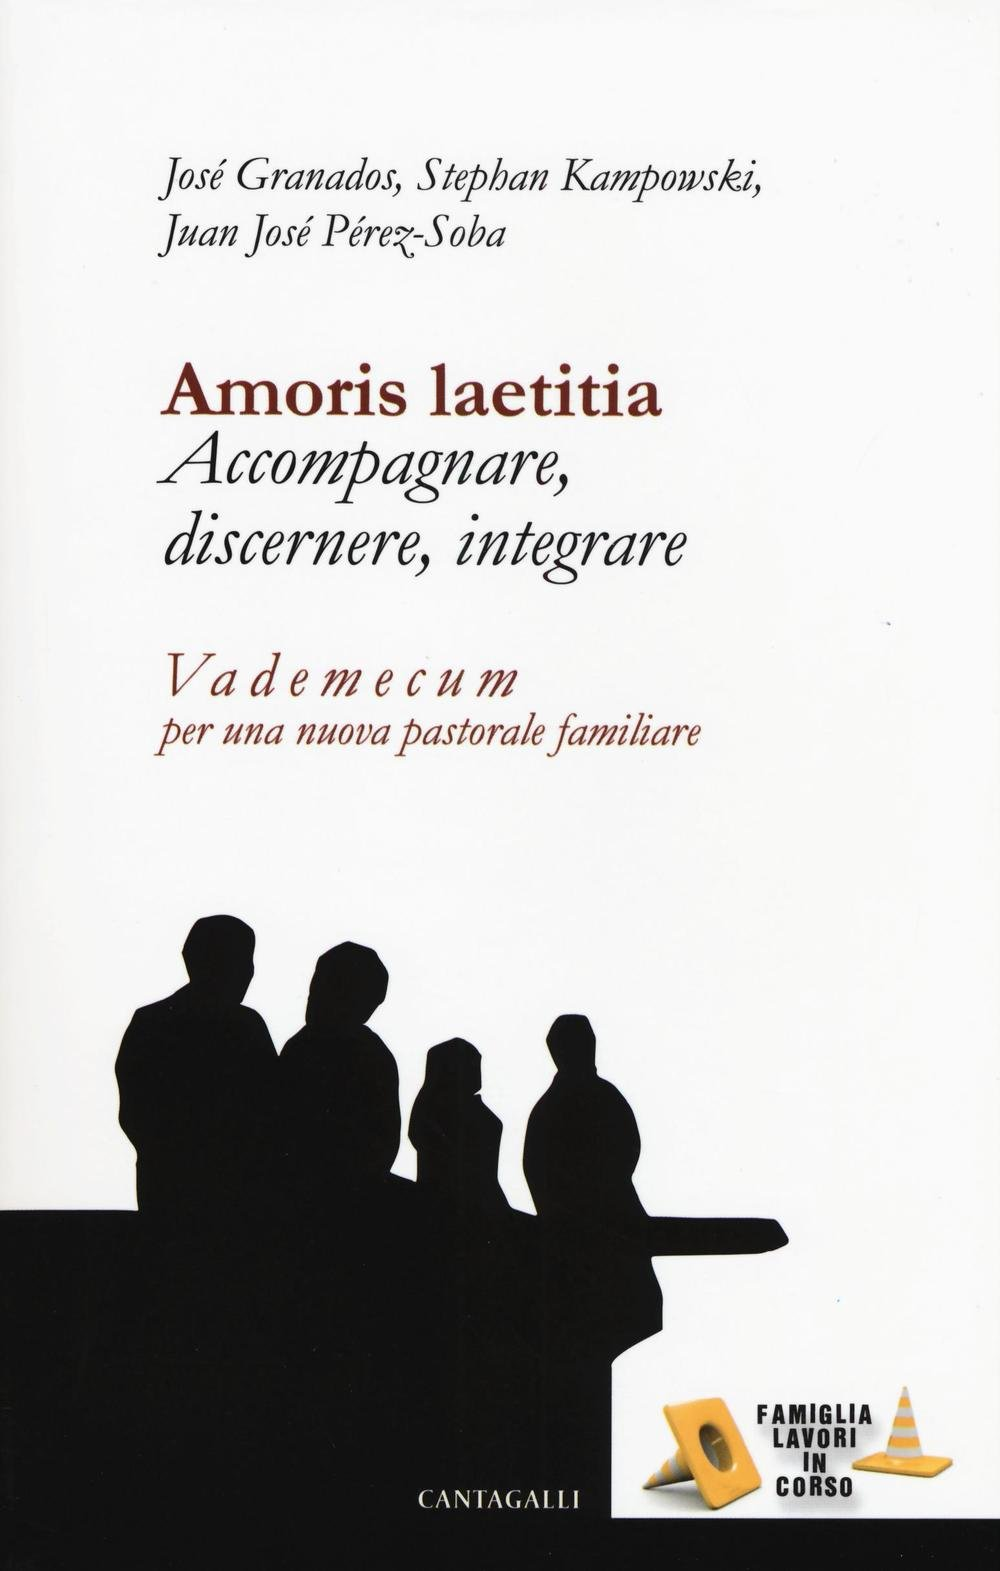 Amoris laetitia. Accompagnare, discernere, integrare. Vademecum. (Amazon)